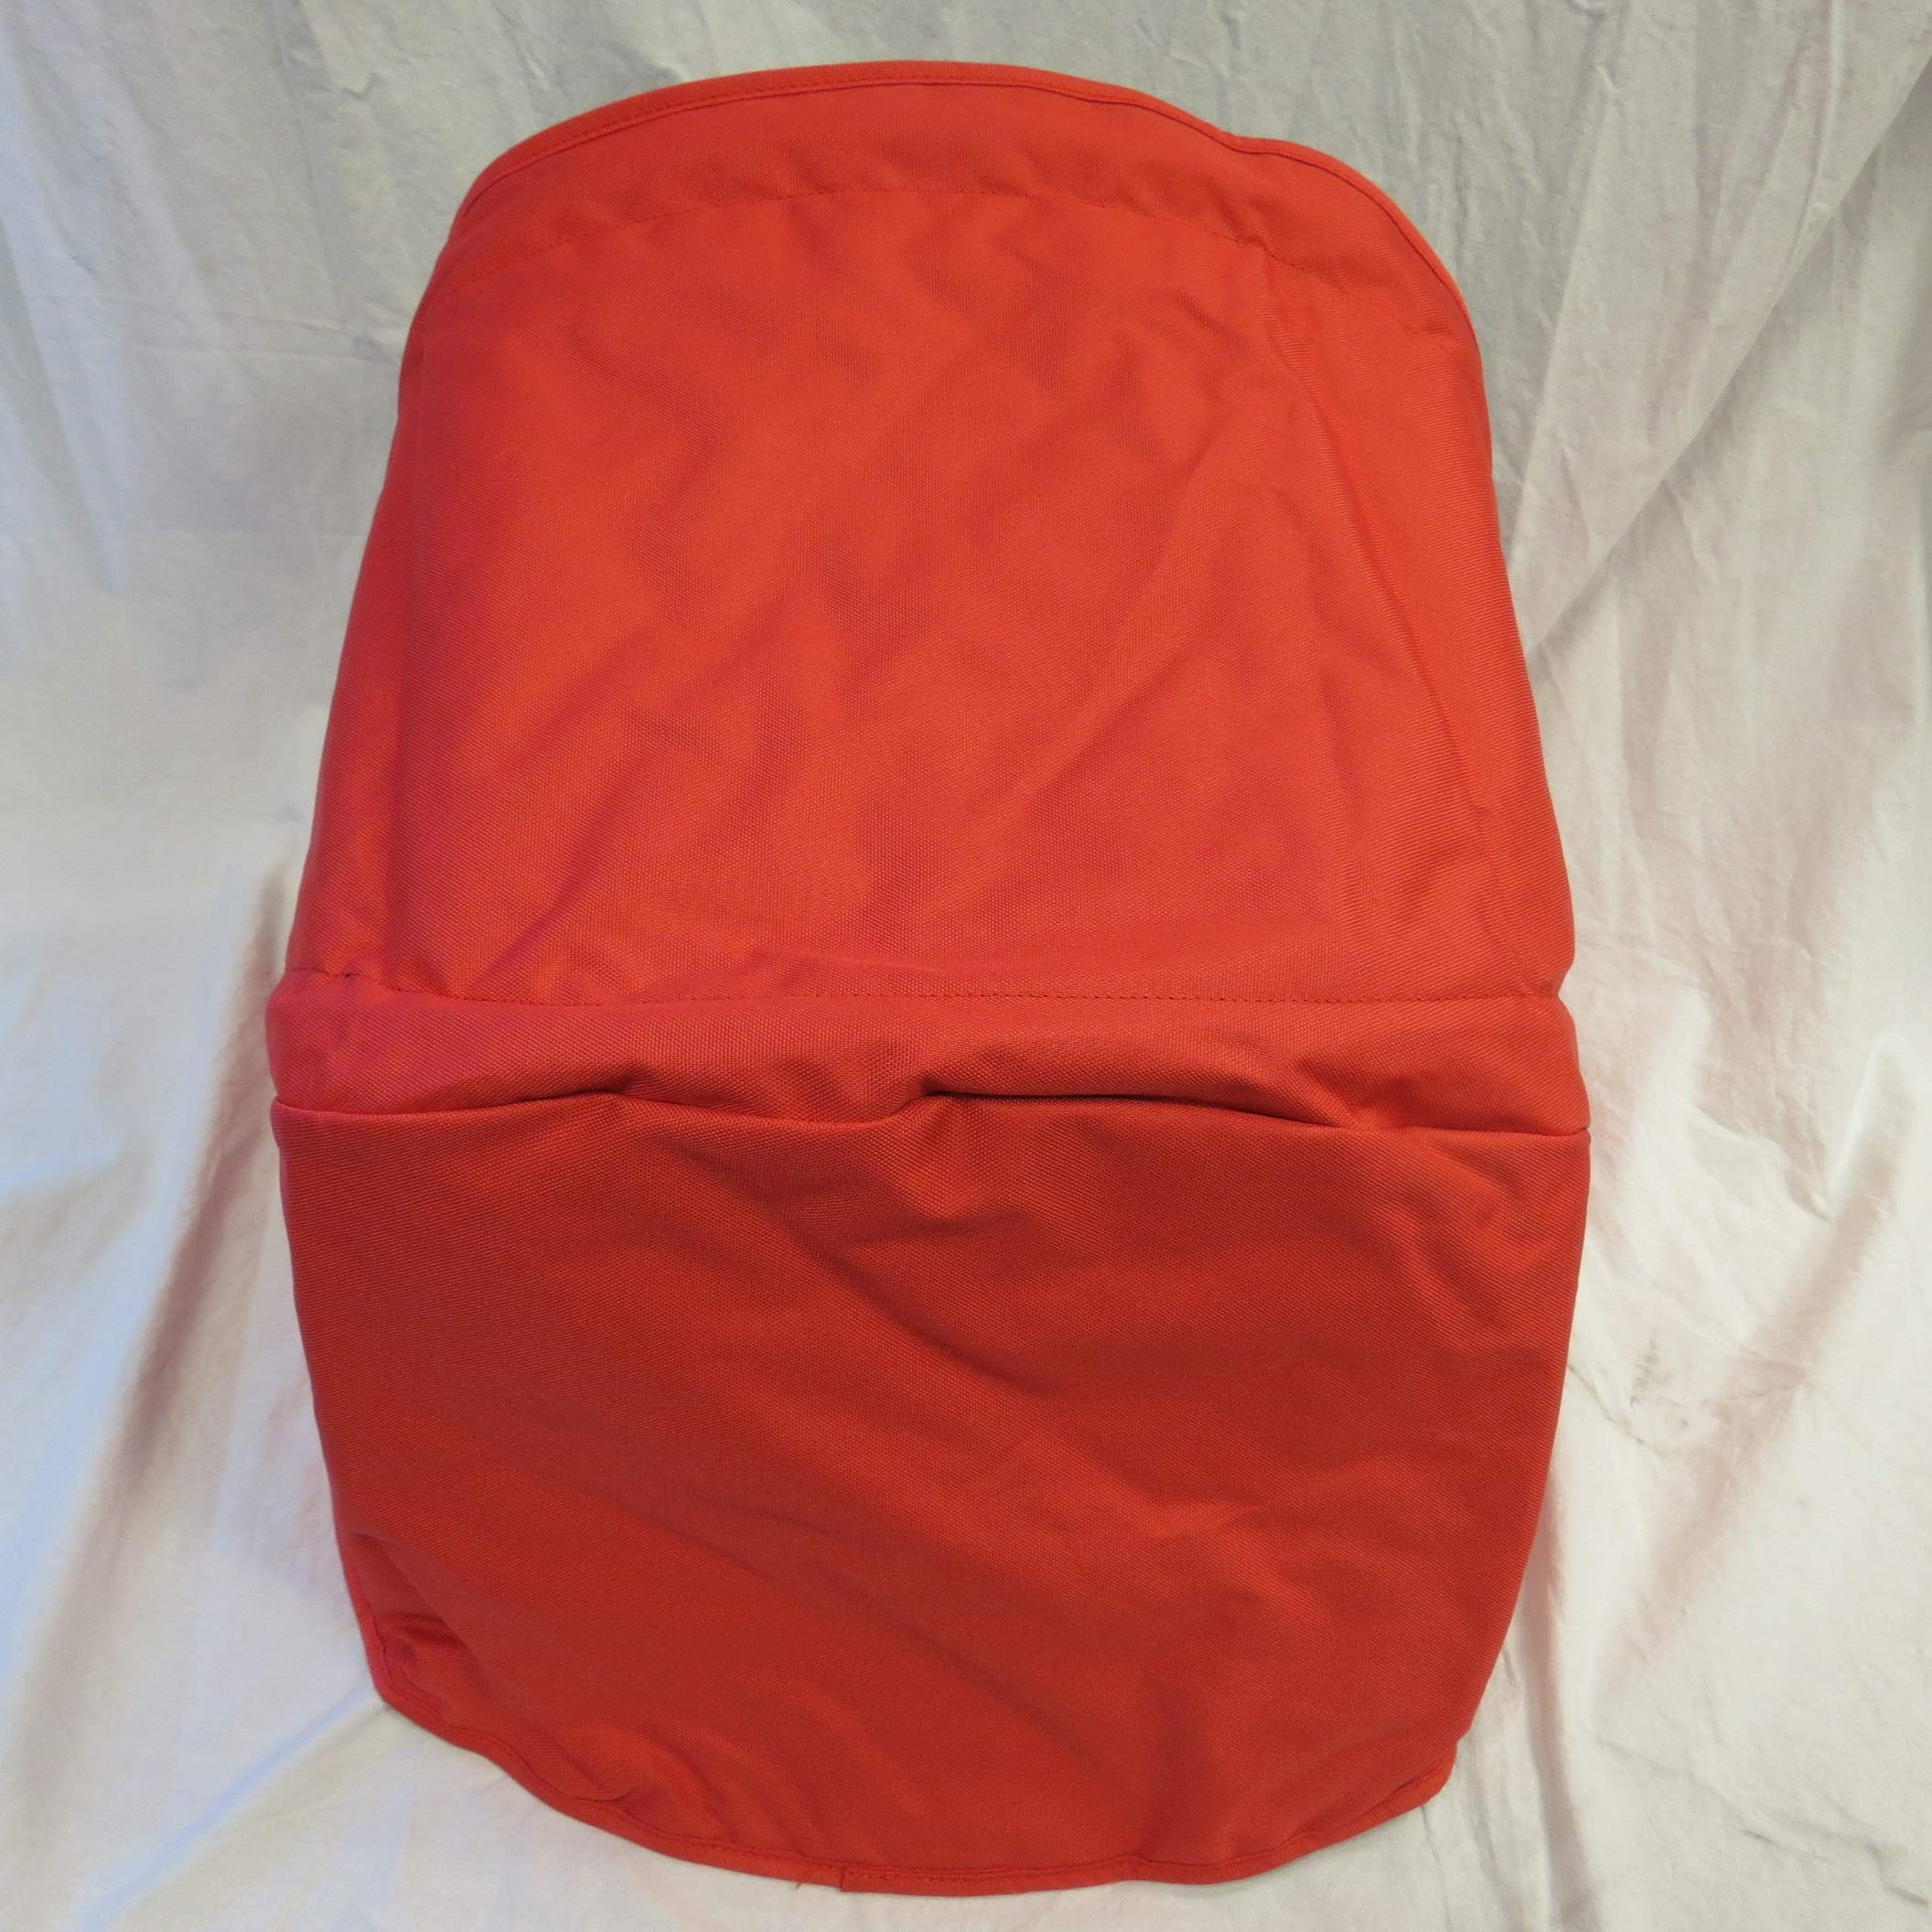 Red Sun Shade Canopy Hood Cover Umbrella with Wires for Bugaboo Cameleon 1, 2, 3, Frog Baby Child Strollers